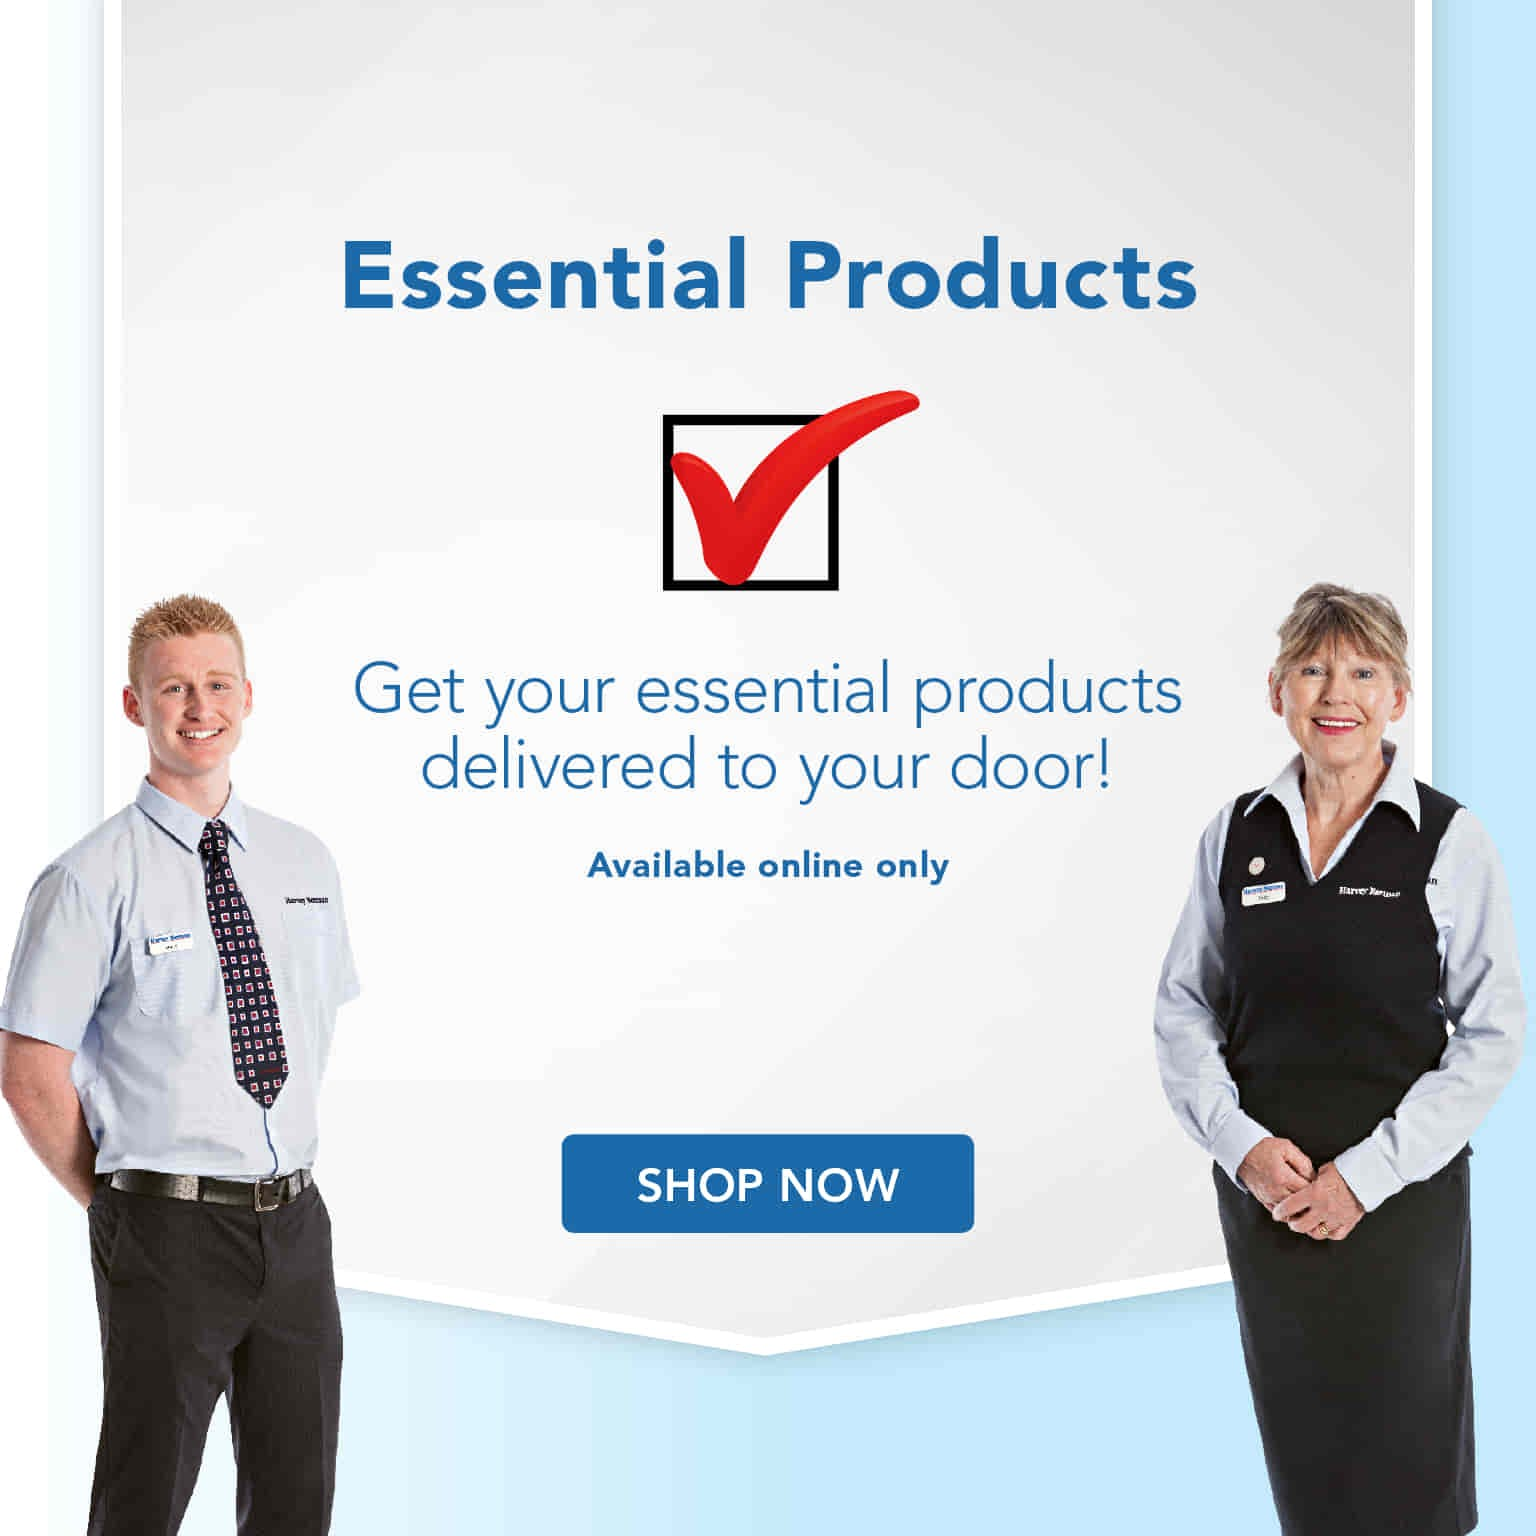 Essential Products - Delivered to Your Door